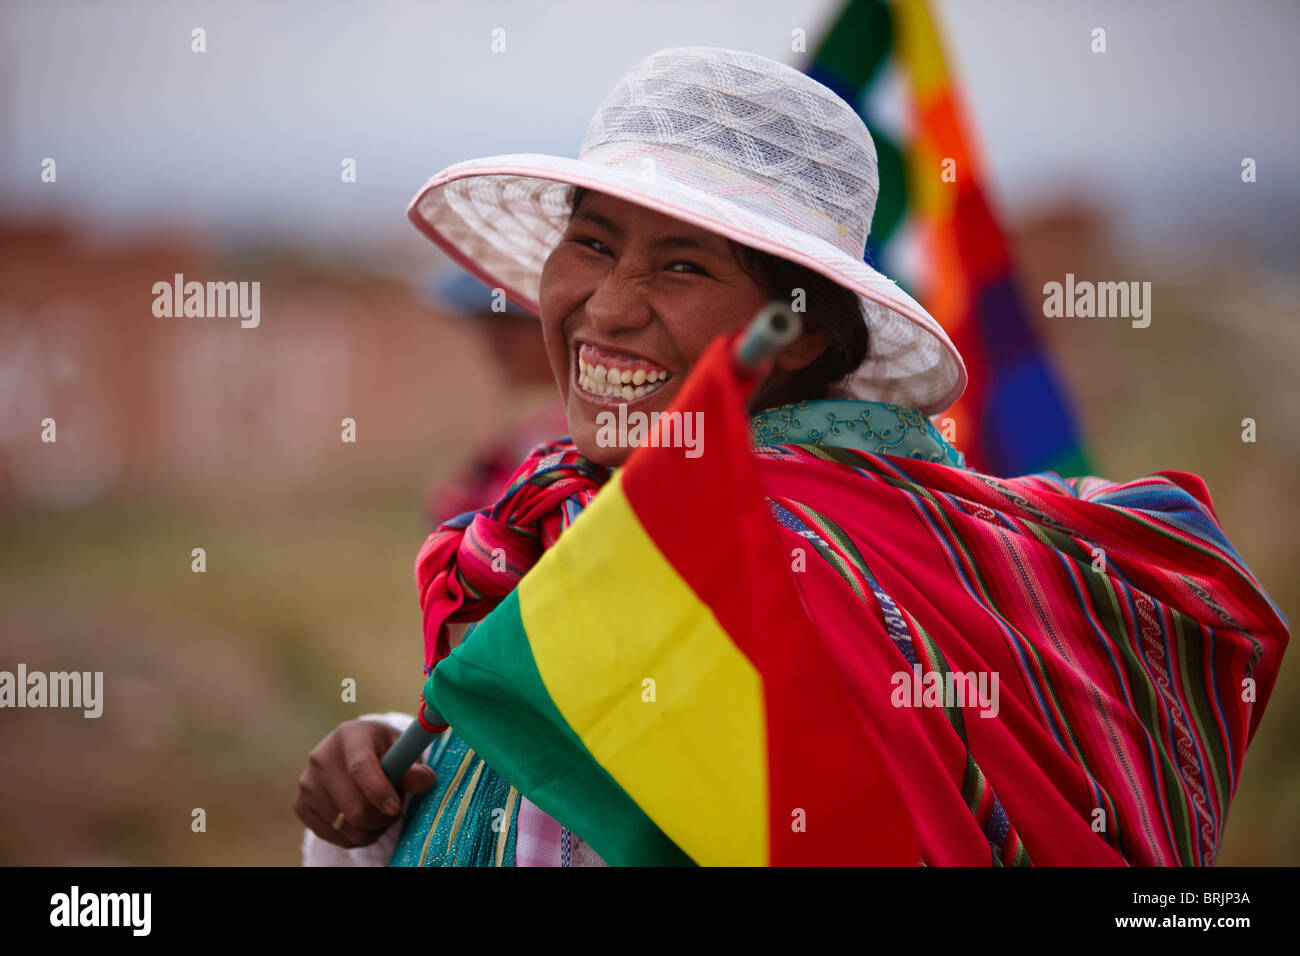 a woman at a political rally, La Paz, Bolivia - Stock Image